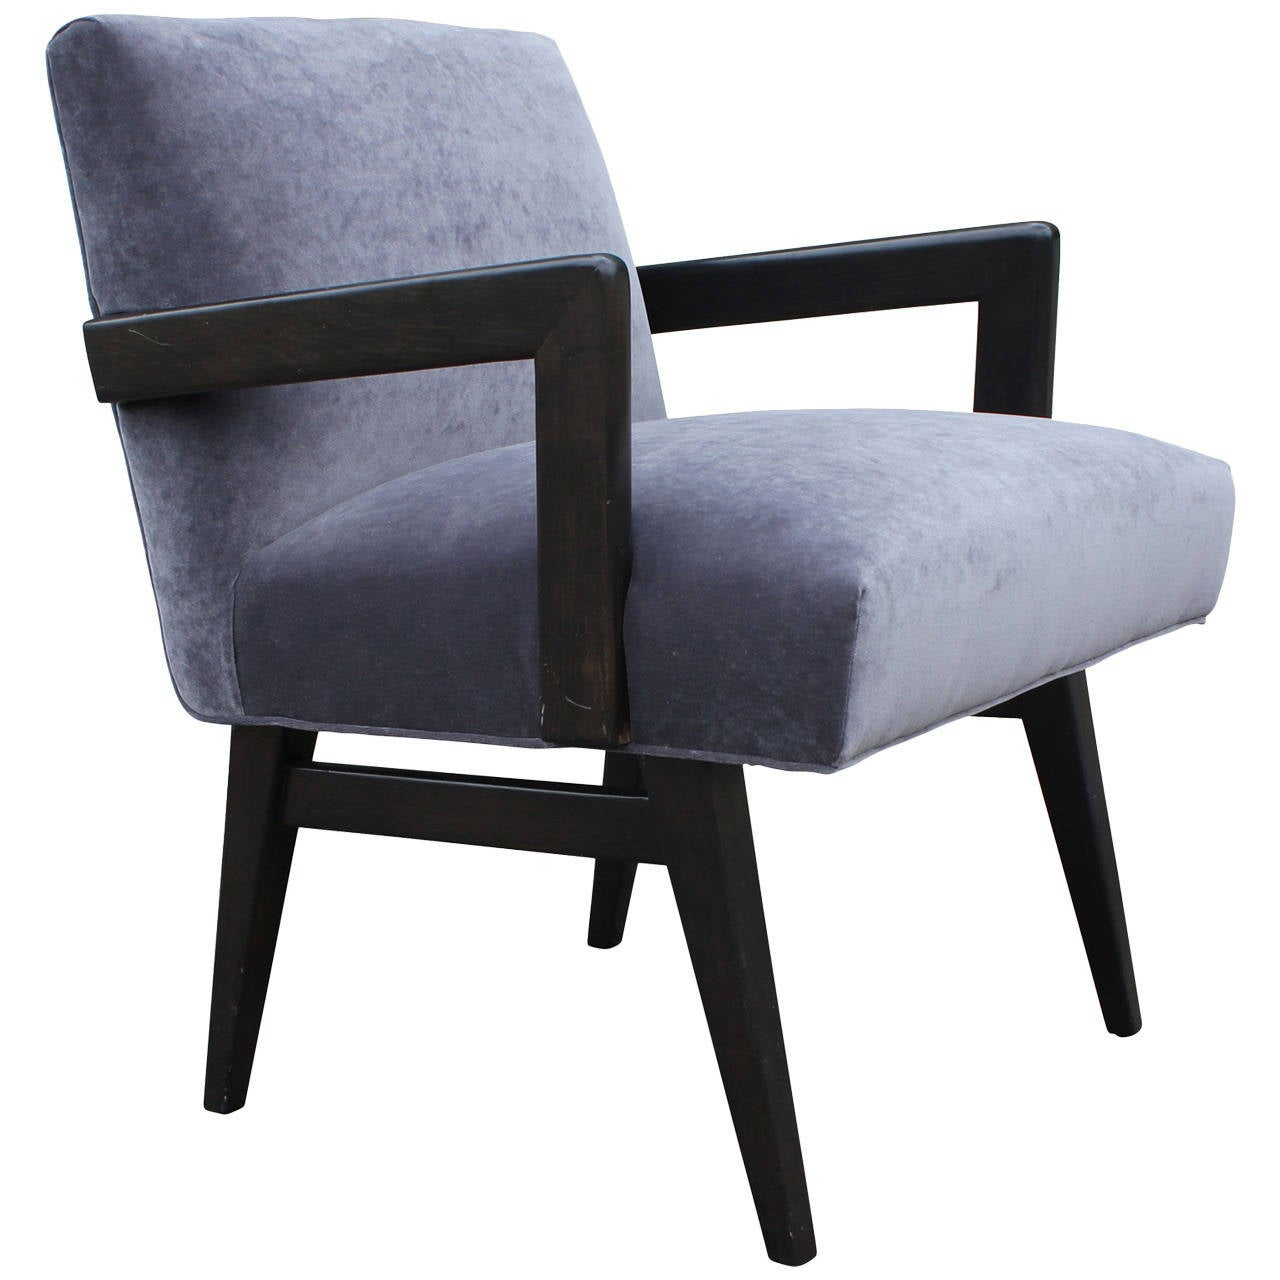 Mid century modern grey velvet armchair in the style of for Mid century modern armchairs